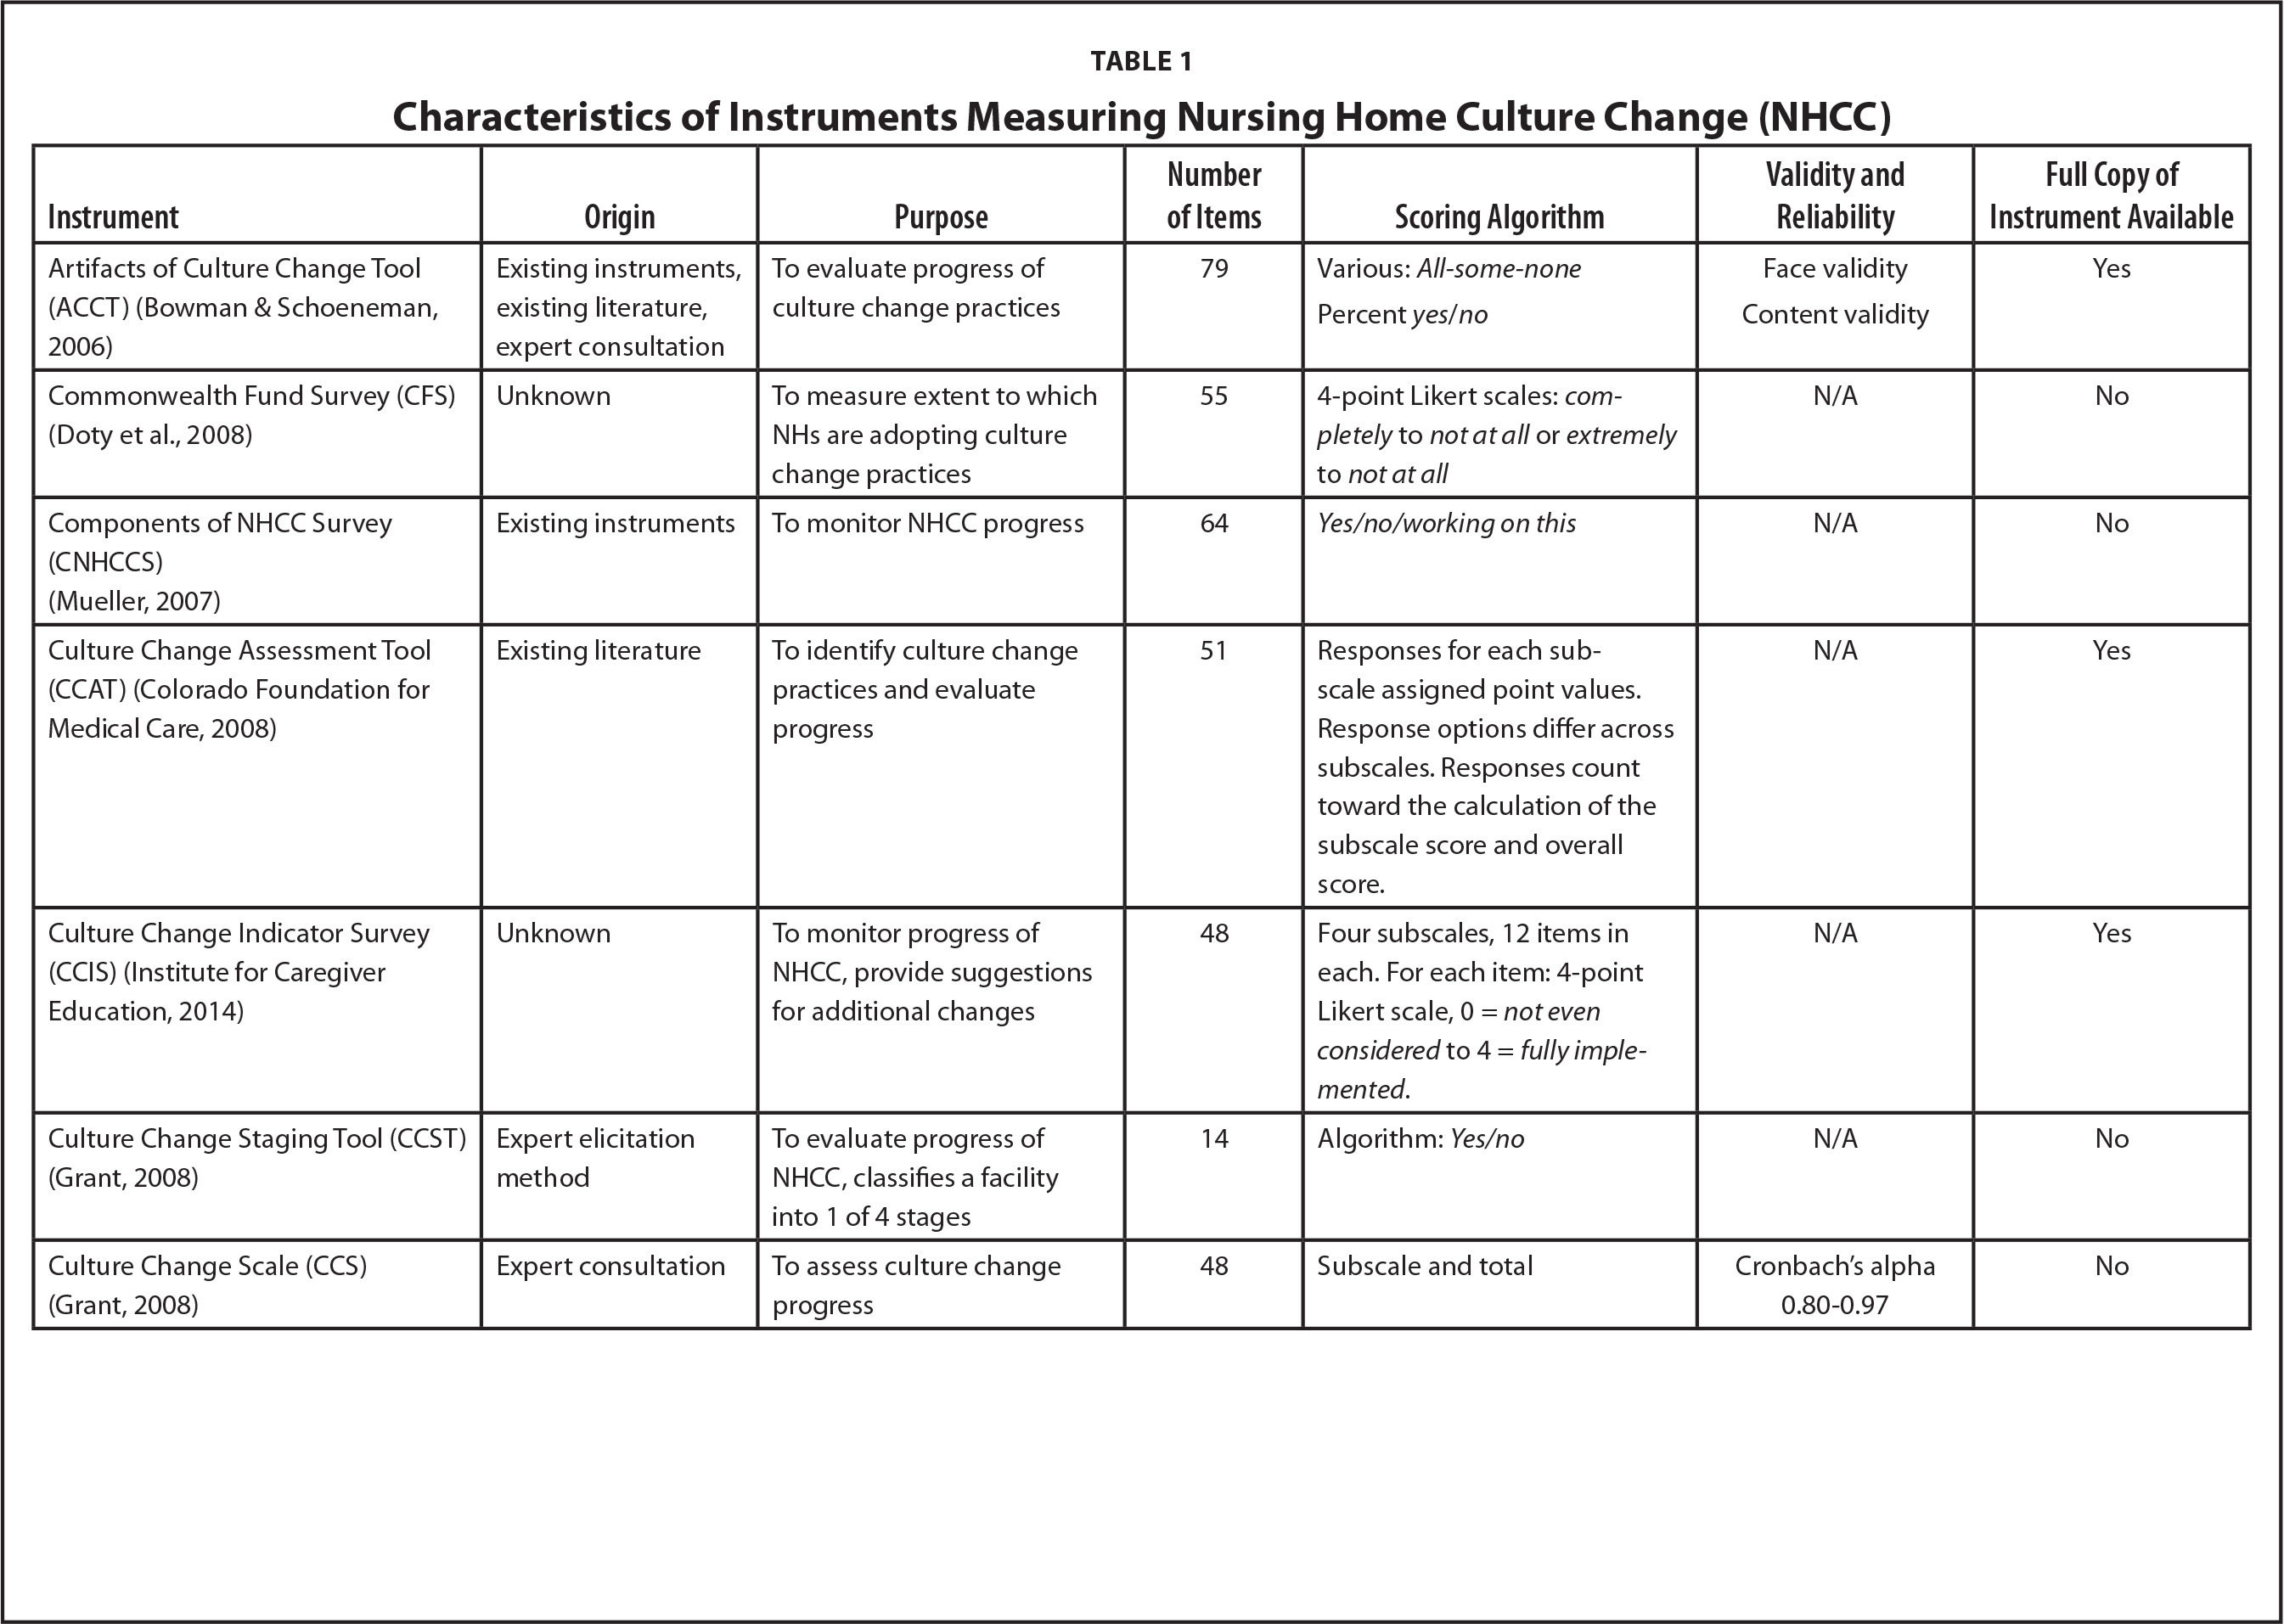 nursing home culture change Culture change and nursing home quality of care david c grabowski, phd,,1 a james o'malley,  impact of the implementation of nursing home culture change on the quality of care, as measured by staff-ing, health-related survey deficiencies, and minimum data set (mds) quality indicators.